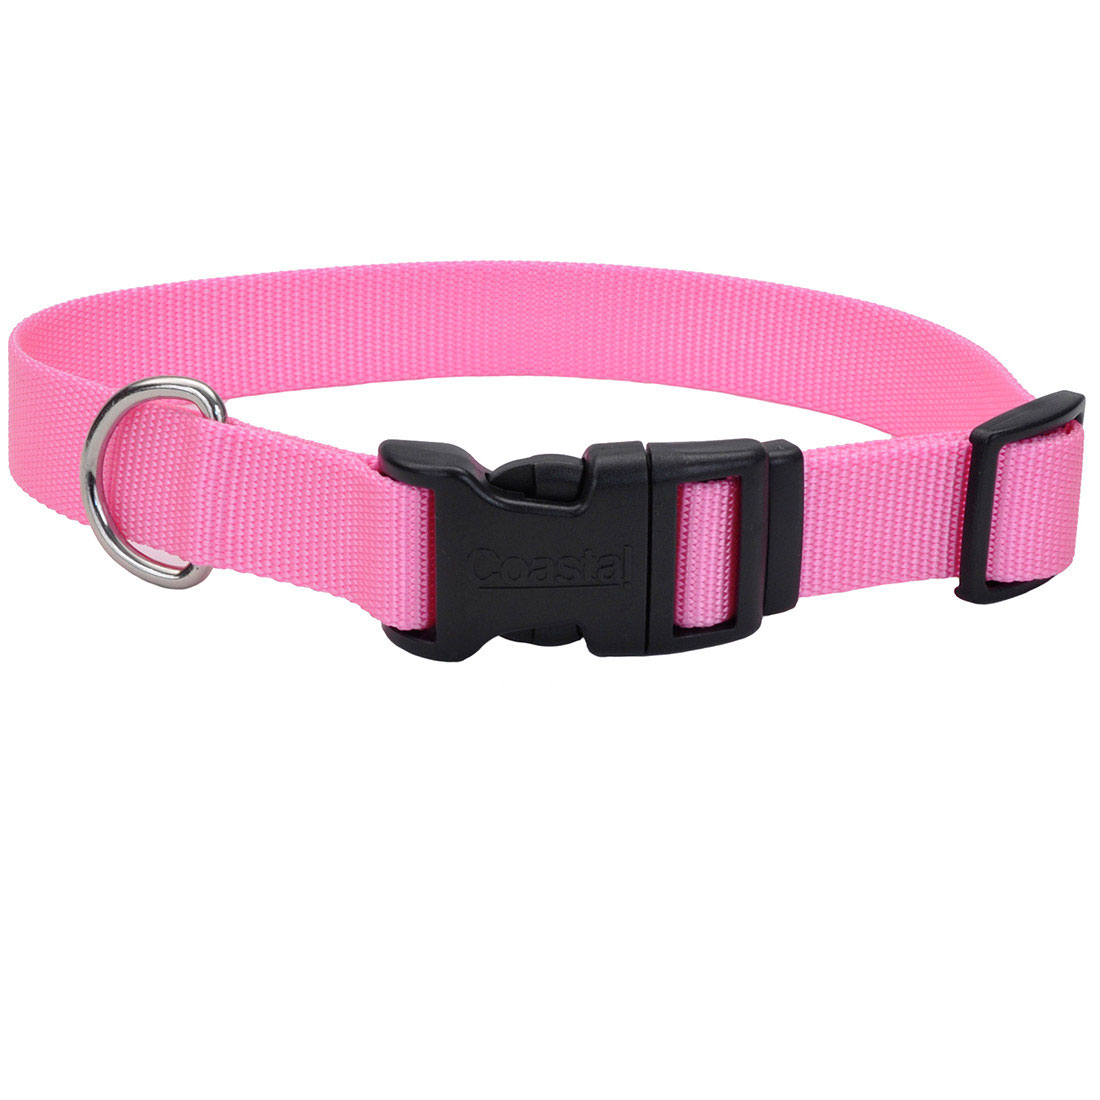 Coastal Adjustable Nylon Collar with Tuff Buckle for Dogs, Pink Bright, 1-in Nylon x 14-in-20-in Neck Girth